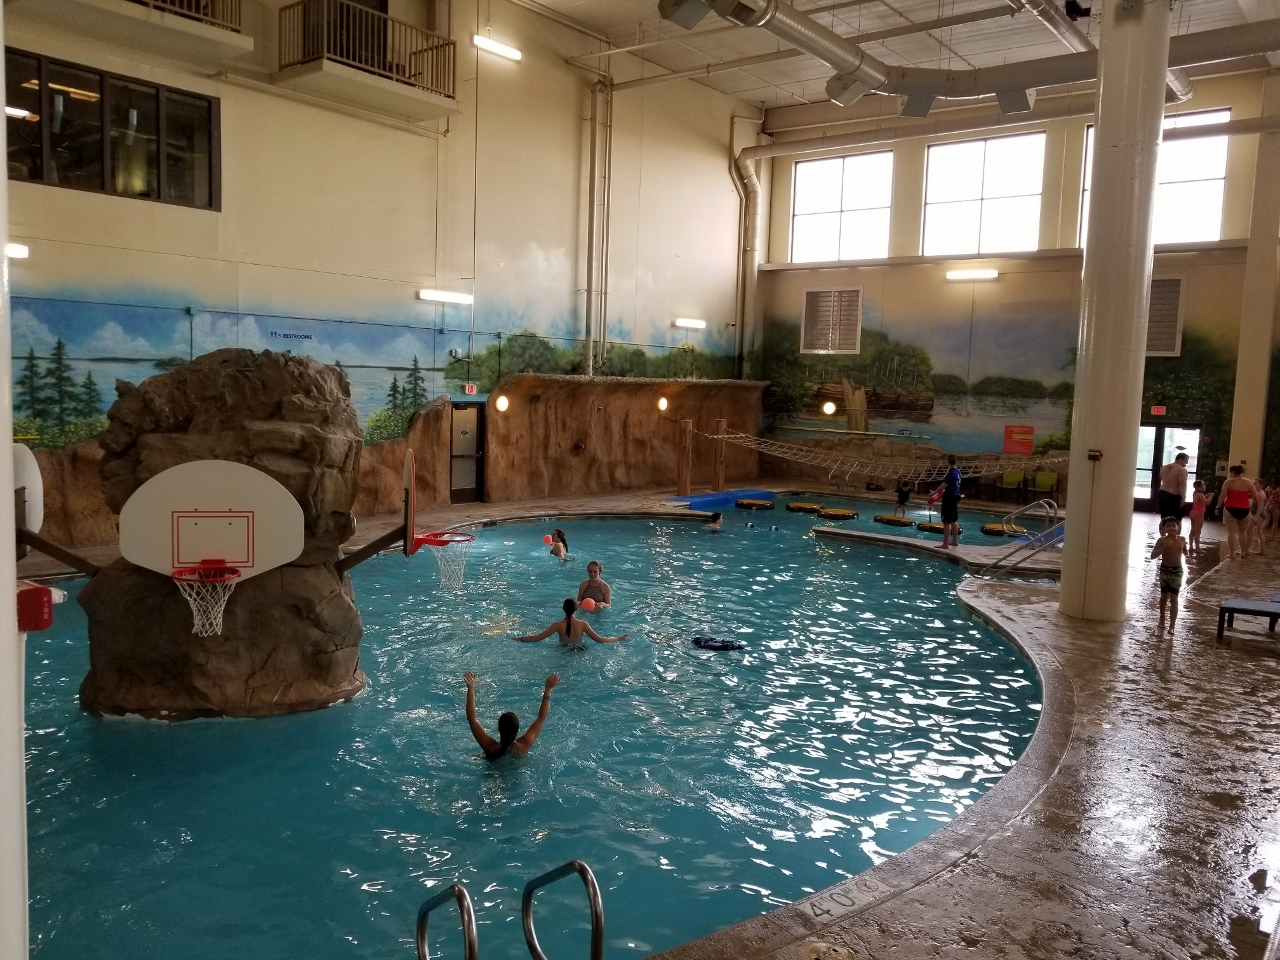 Activity pool at great wolf lodge in bloomington minnesota